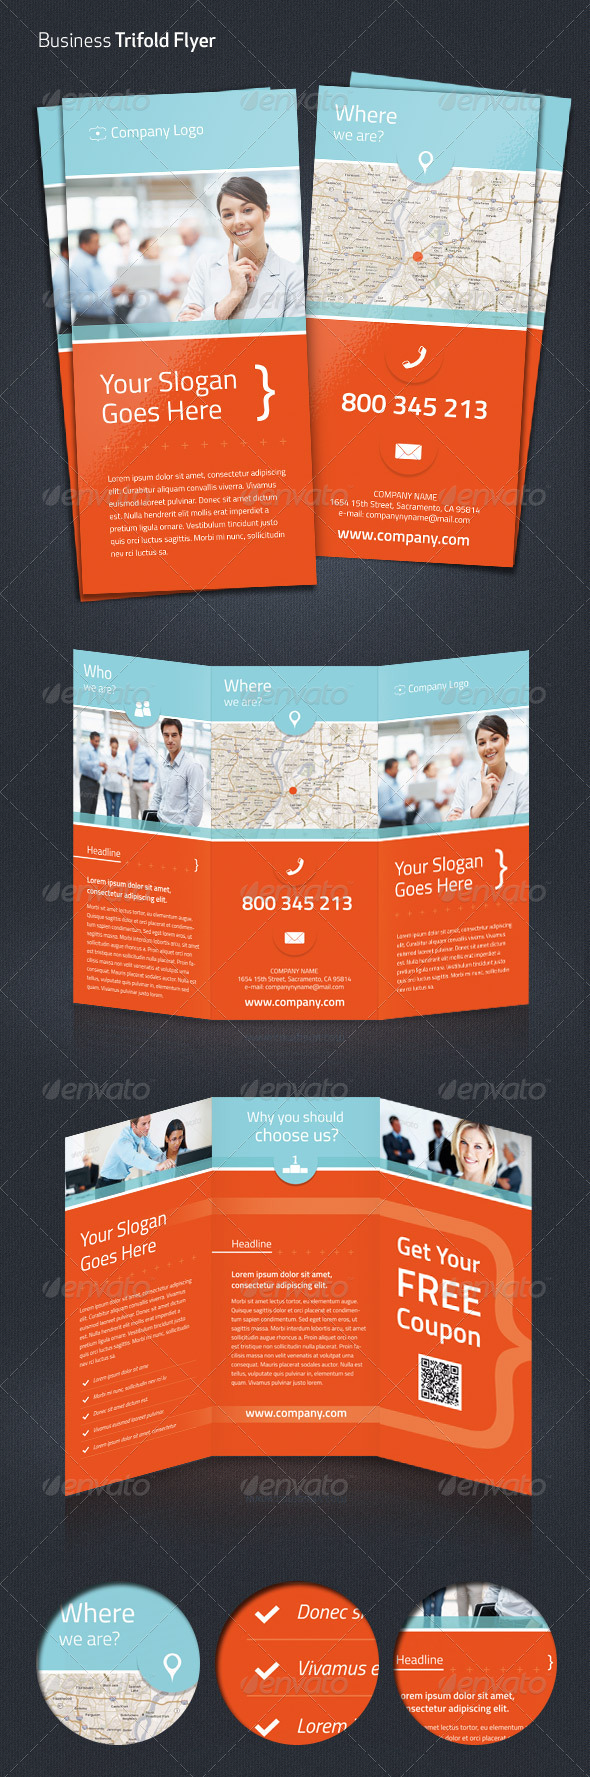 Business Trifold Flyer - Corporate Flyers